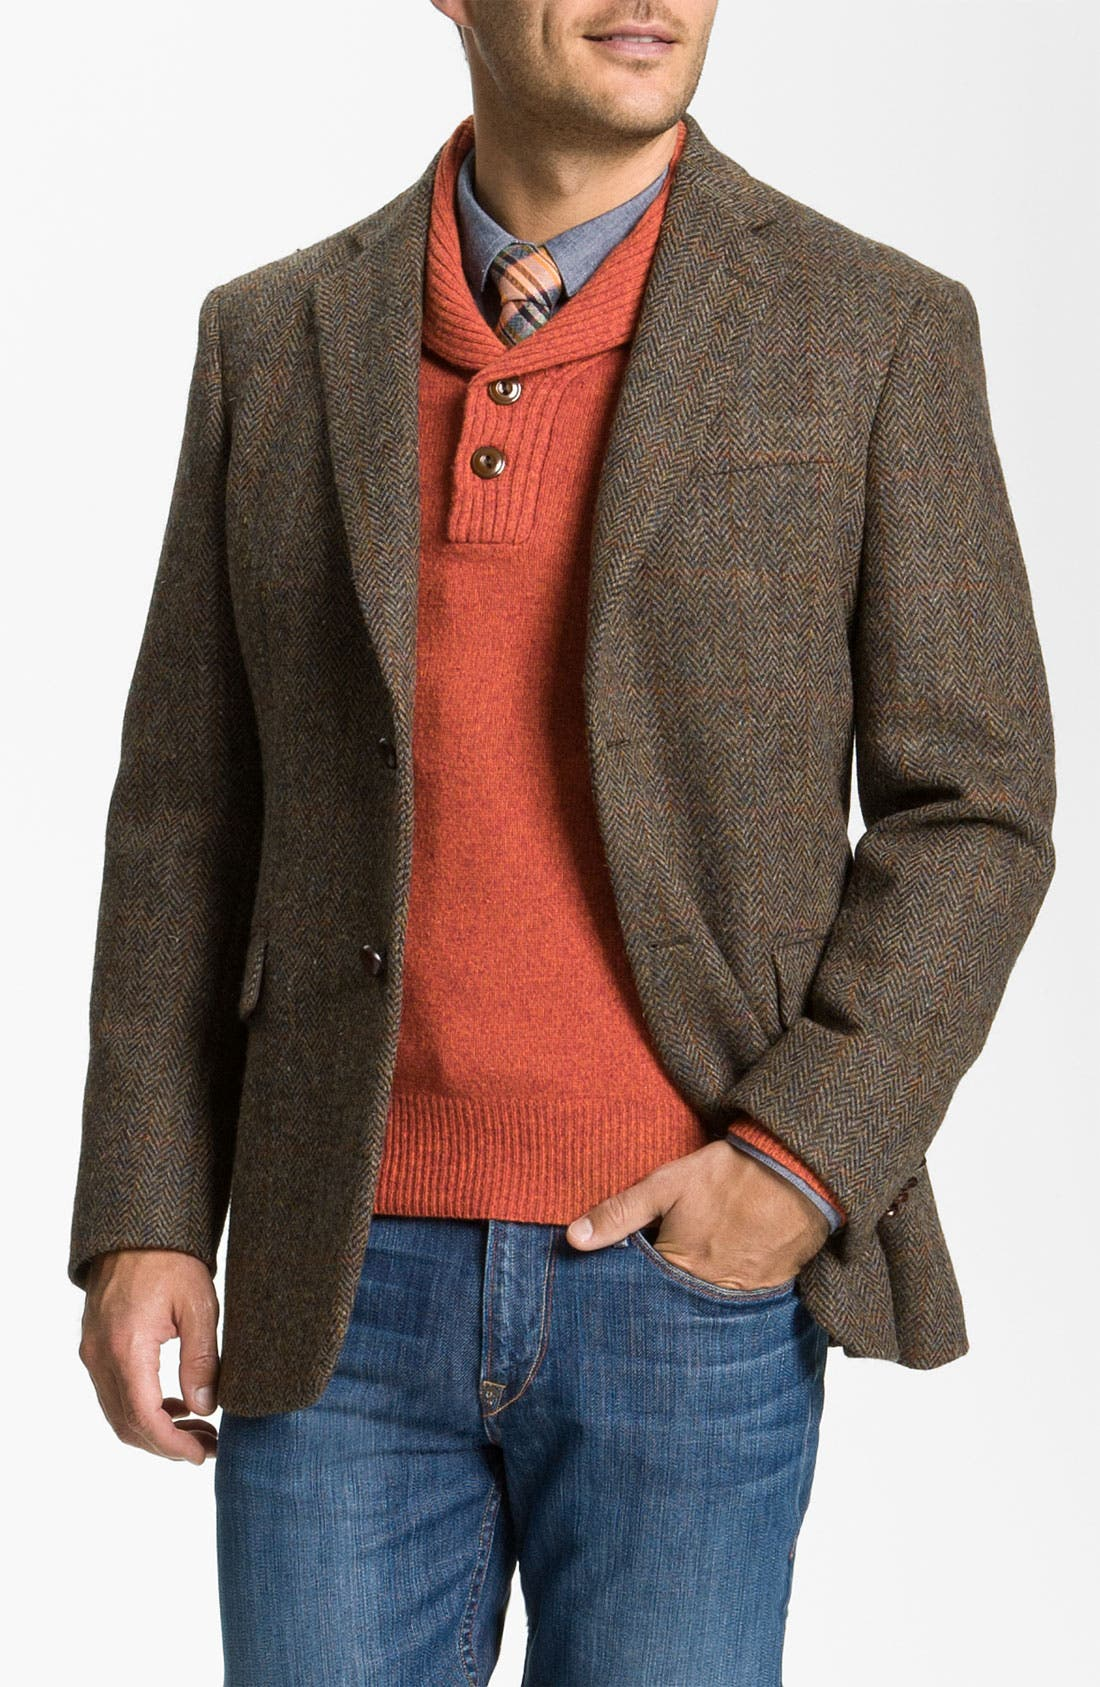 Alternate Image 1 Selected - John W. Nordstrom® Herringbone Sportcoat